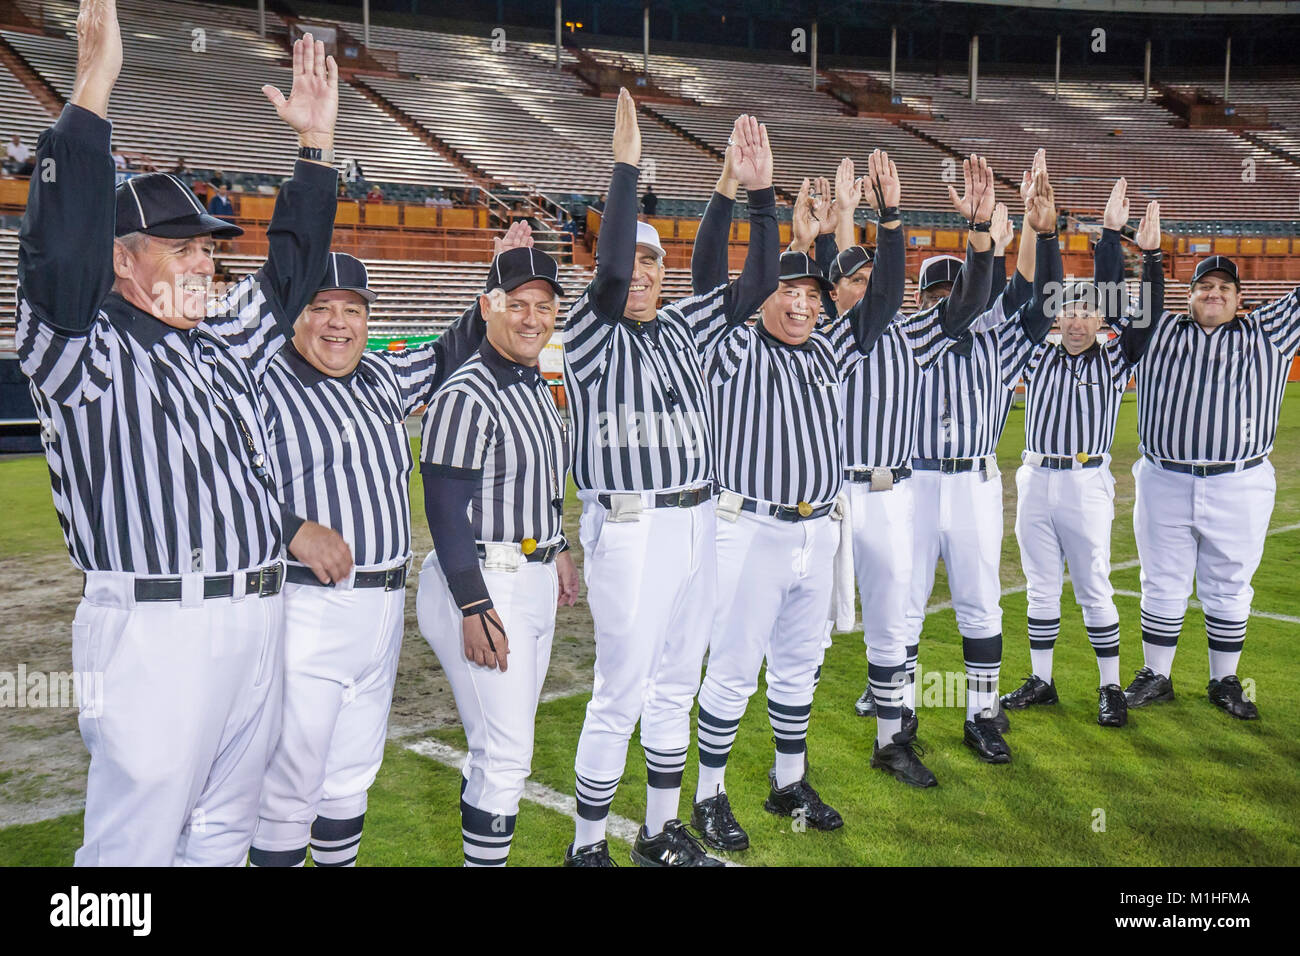 All American Offense Defense Bowl high school football referees officials striped uniforms men man - Stock Image